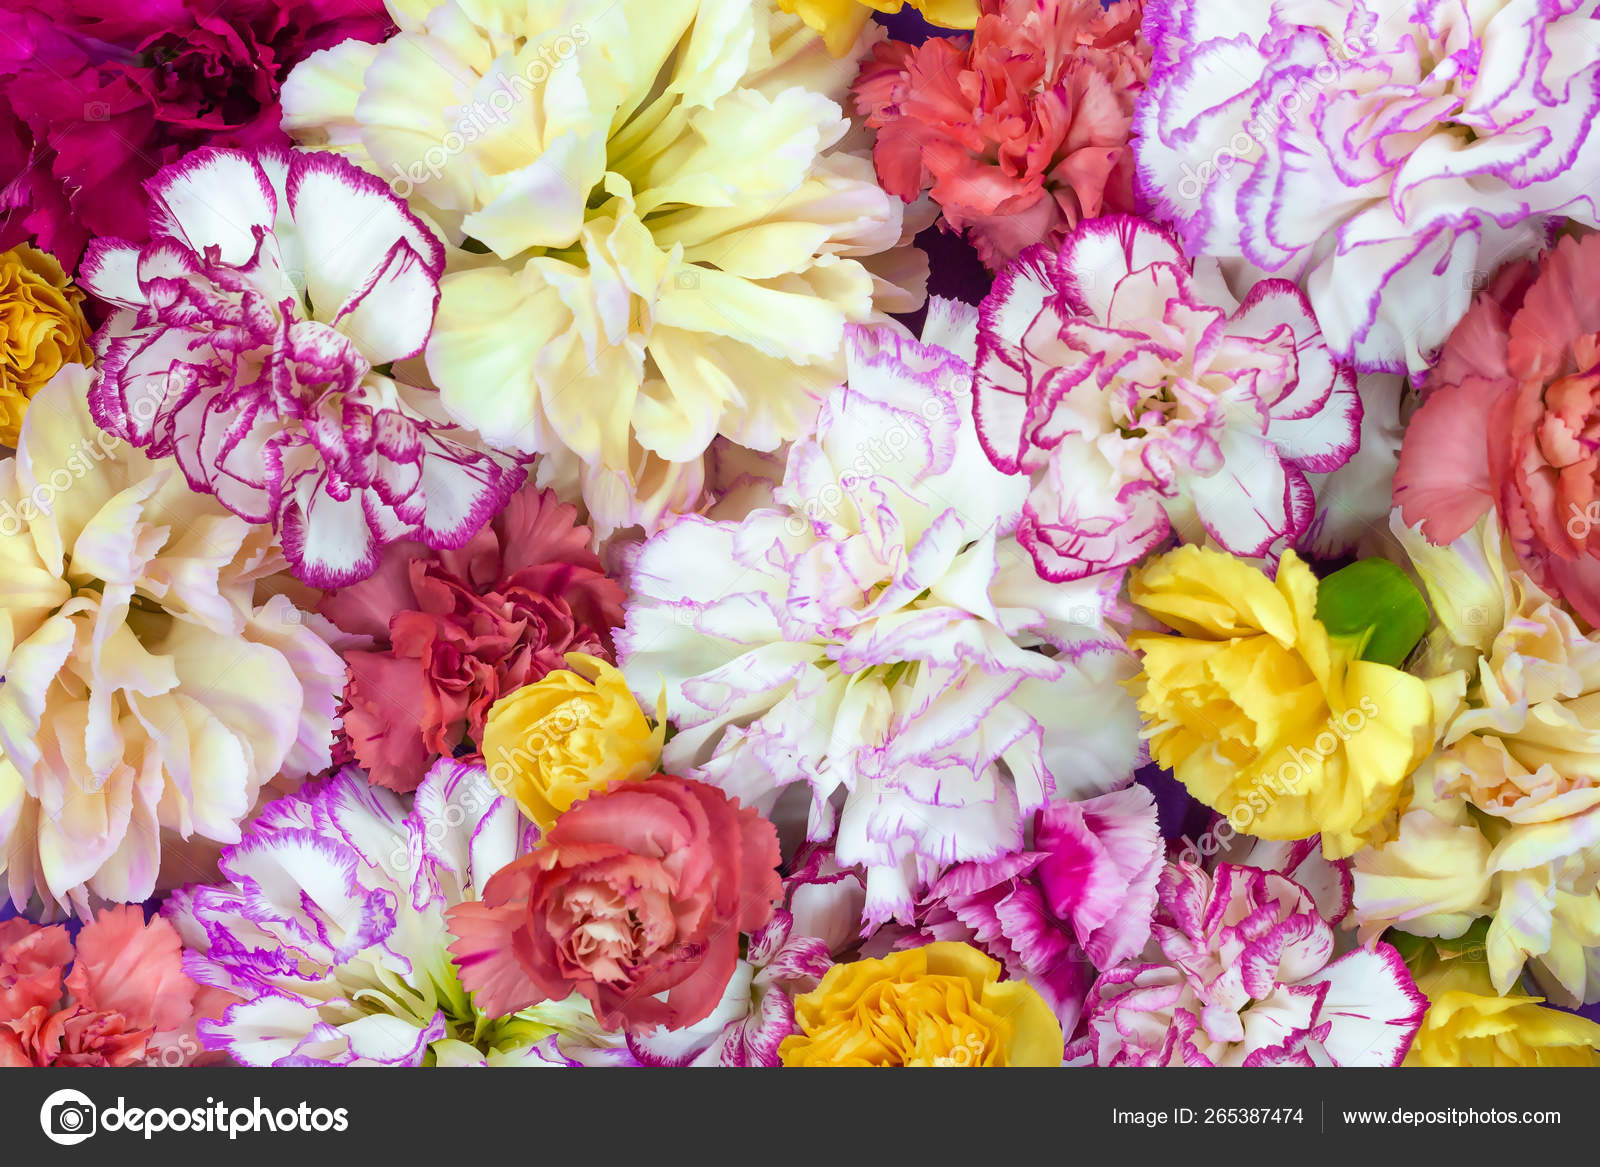 Colorful Flower Bouquet Background Made Of Colorful Carnation Flowers Wall For Background And Wallpaper Stock Photo Image By C 4alovskii Mail Ru 265387474